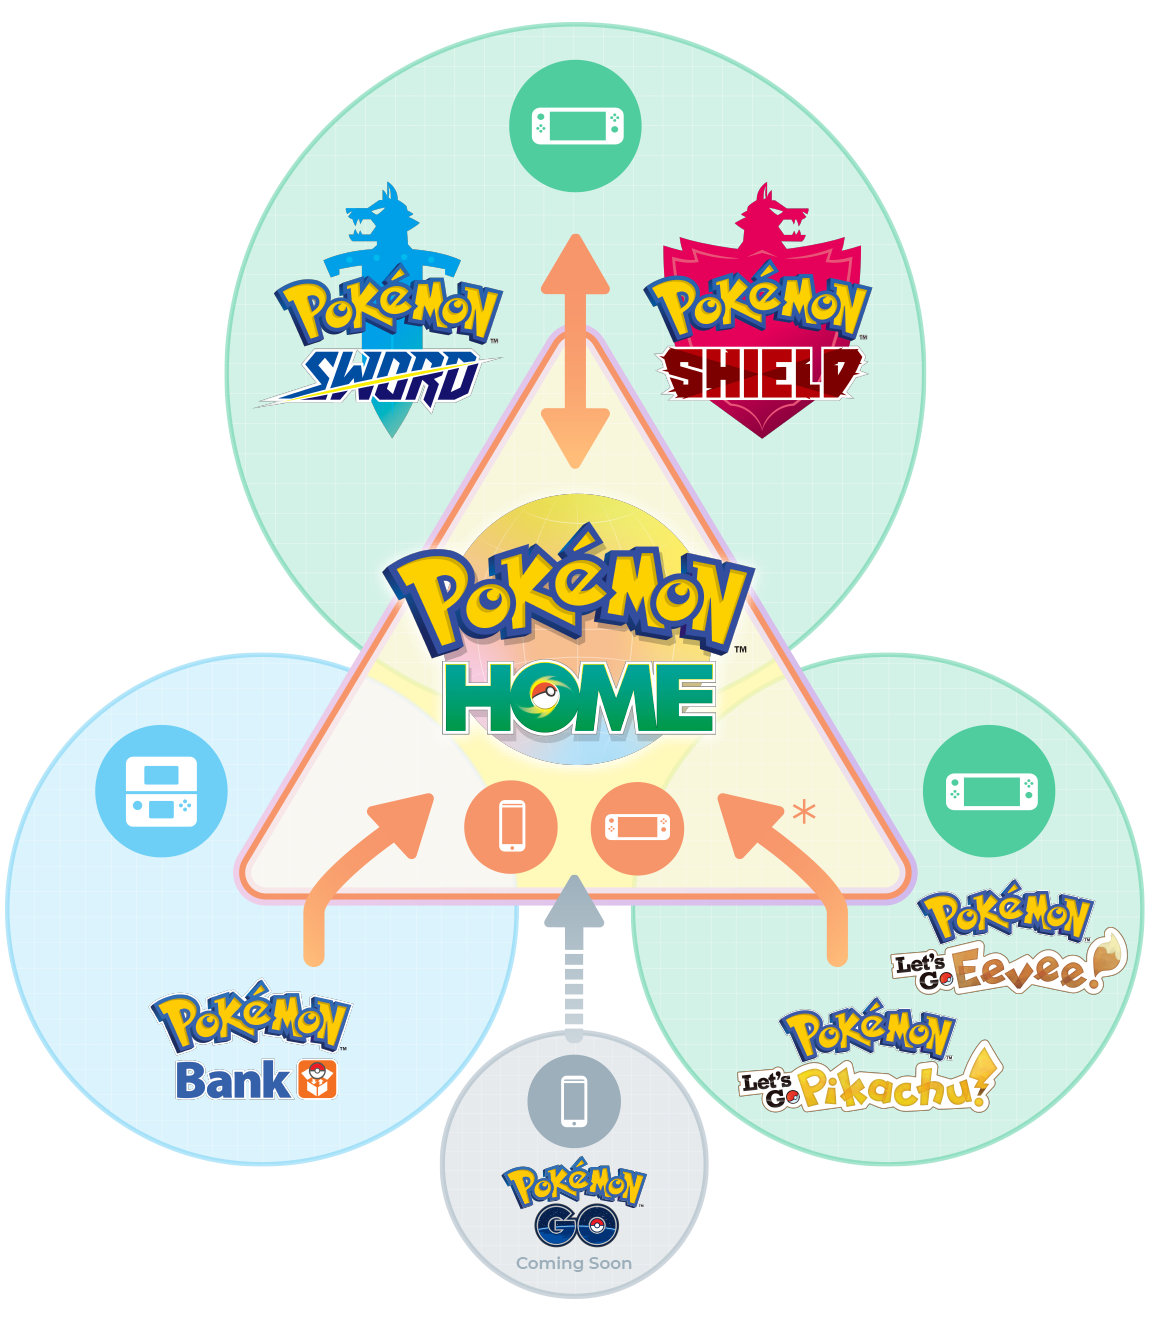 A Pokémon Home infographic